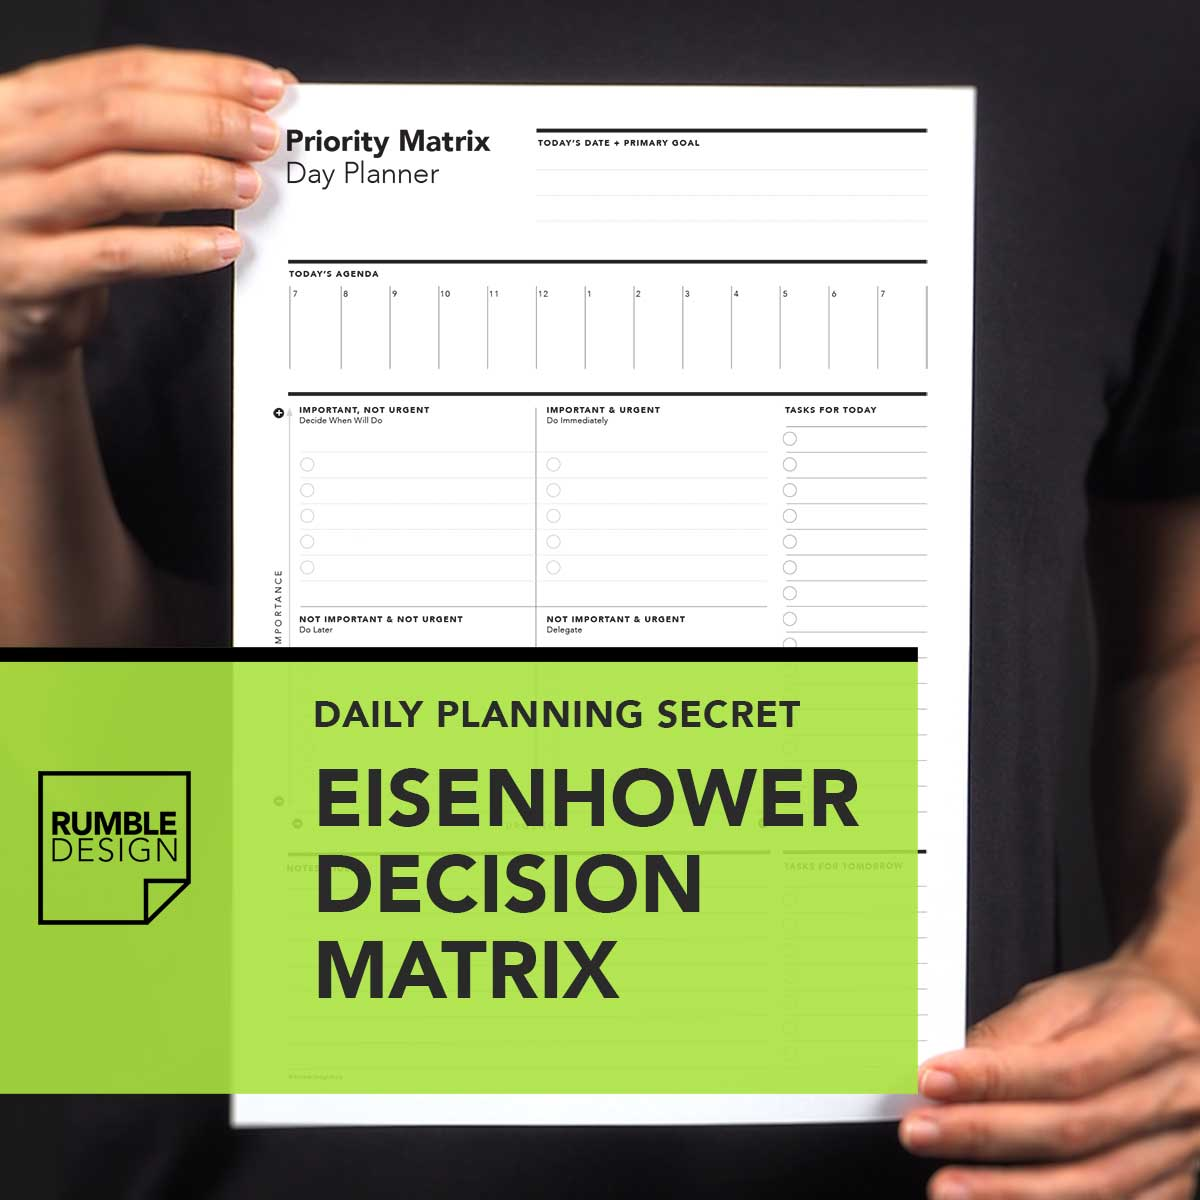 Eisenhower Decision Matrix With Daily Task Planning